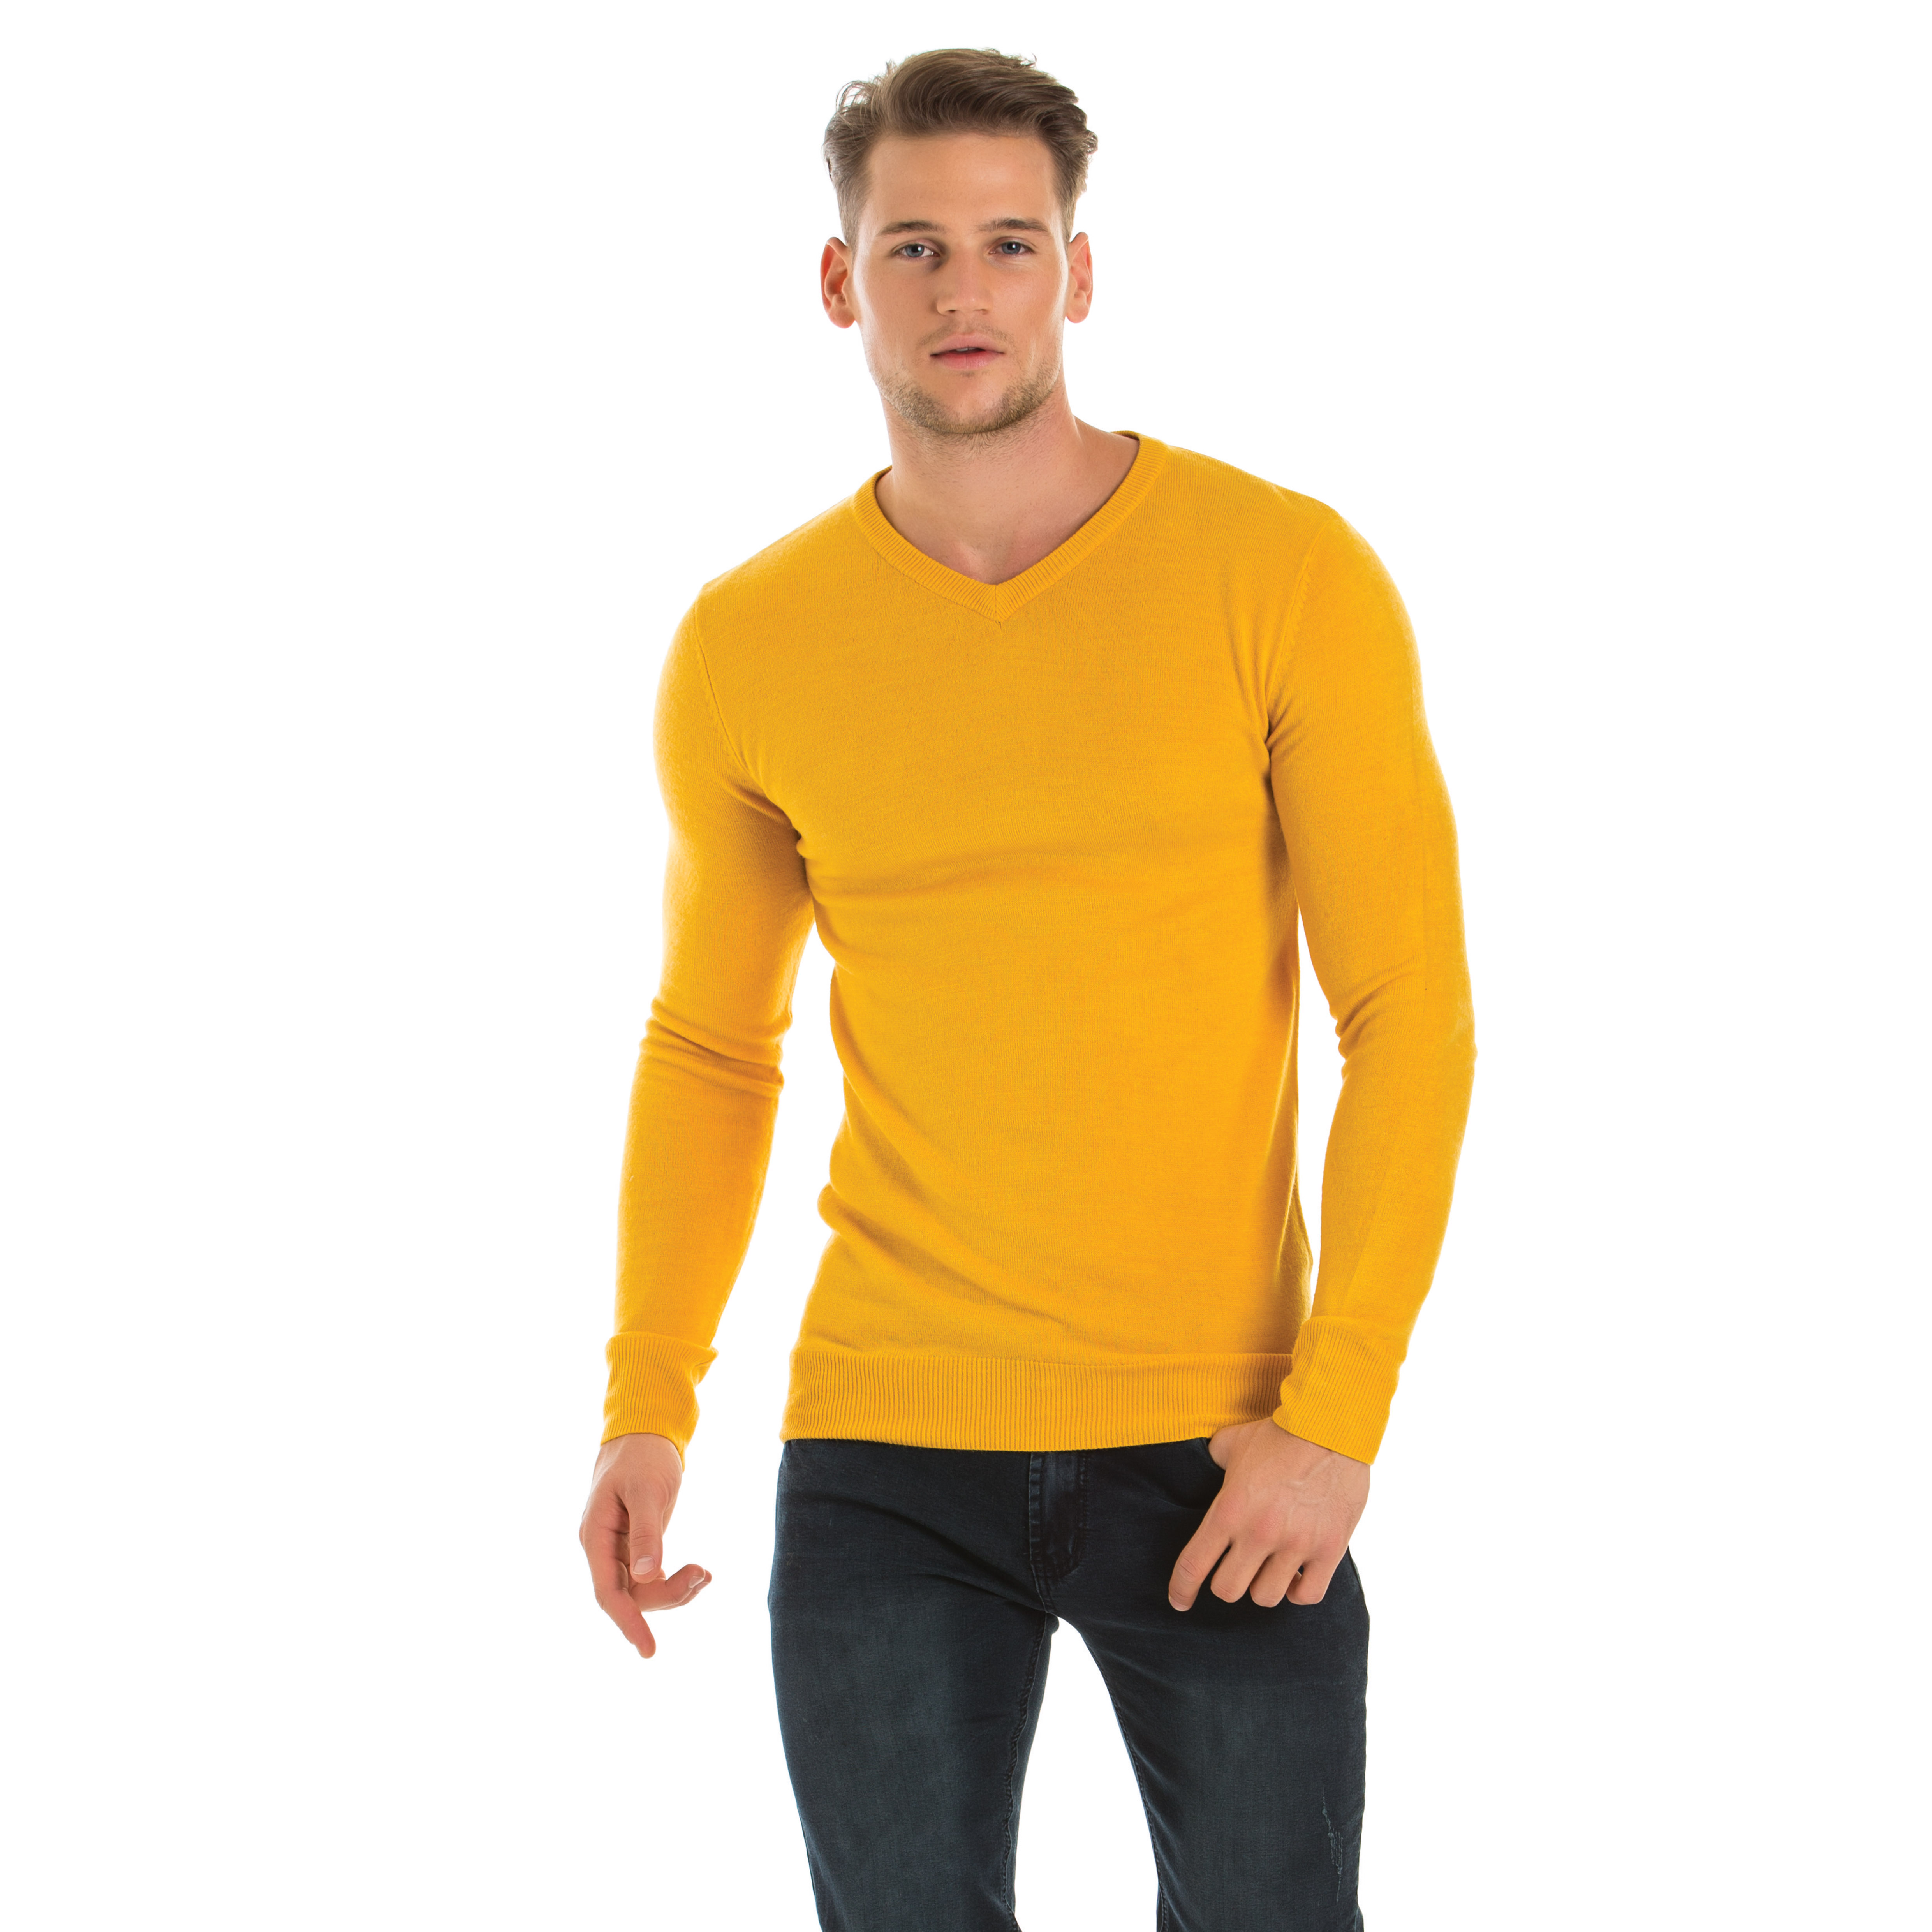 A man wearing a yellow v-neck sweater